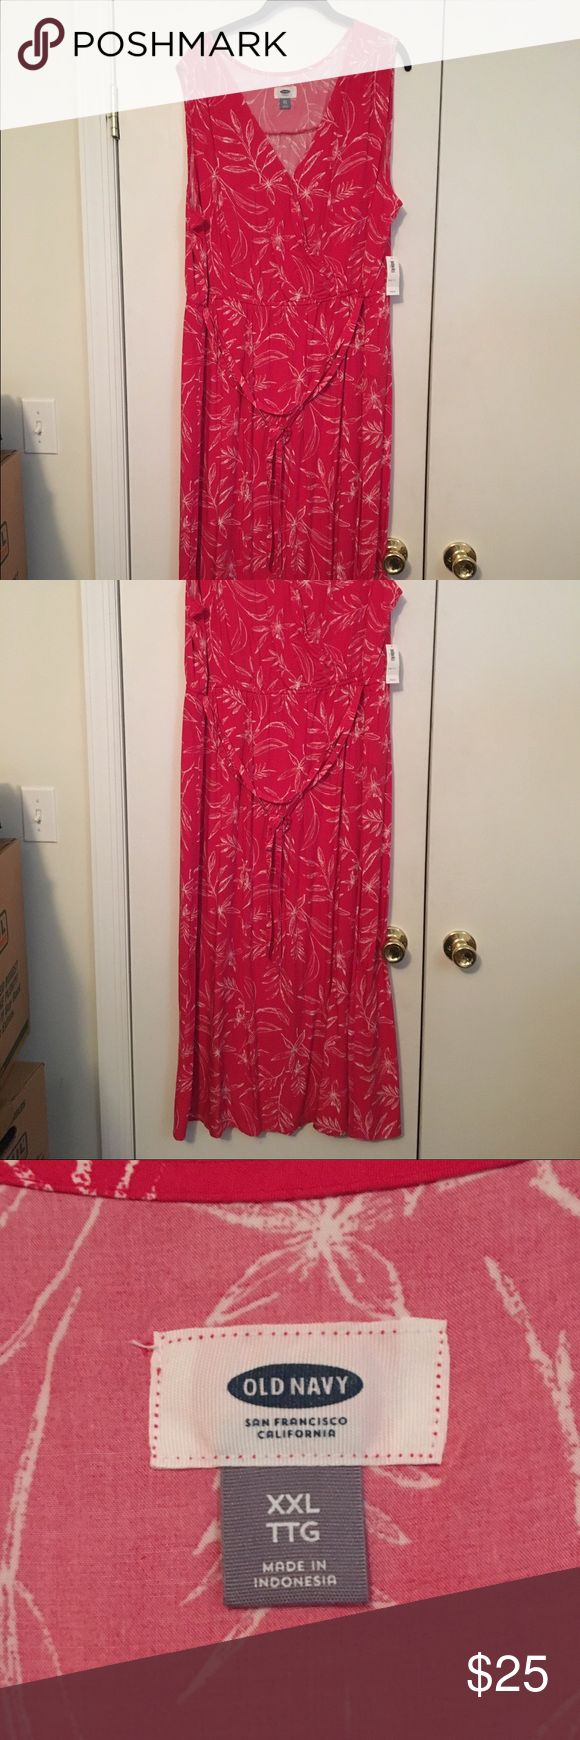 NWT Hot Pink Maxi Dress from Old Navy size XXL Hot Pink Maxi Dress from Old Navy size XXL Old Navy Dresses Maxi